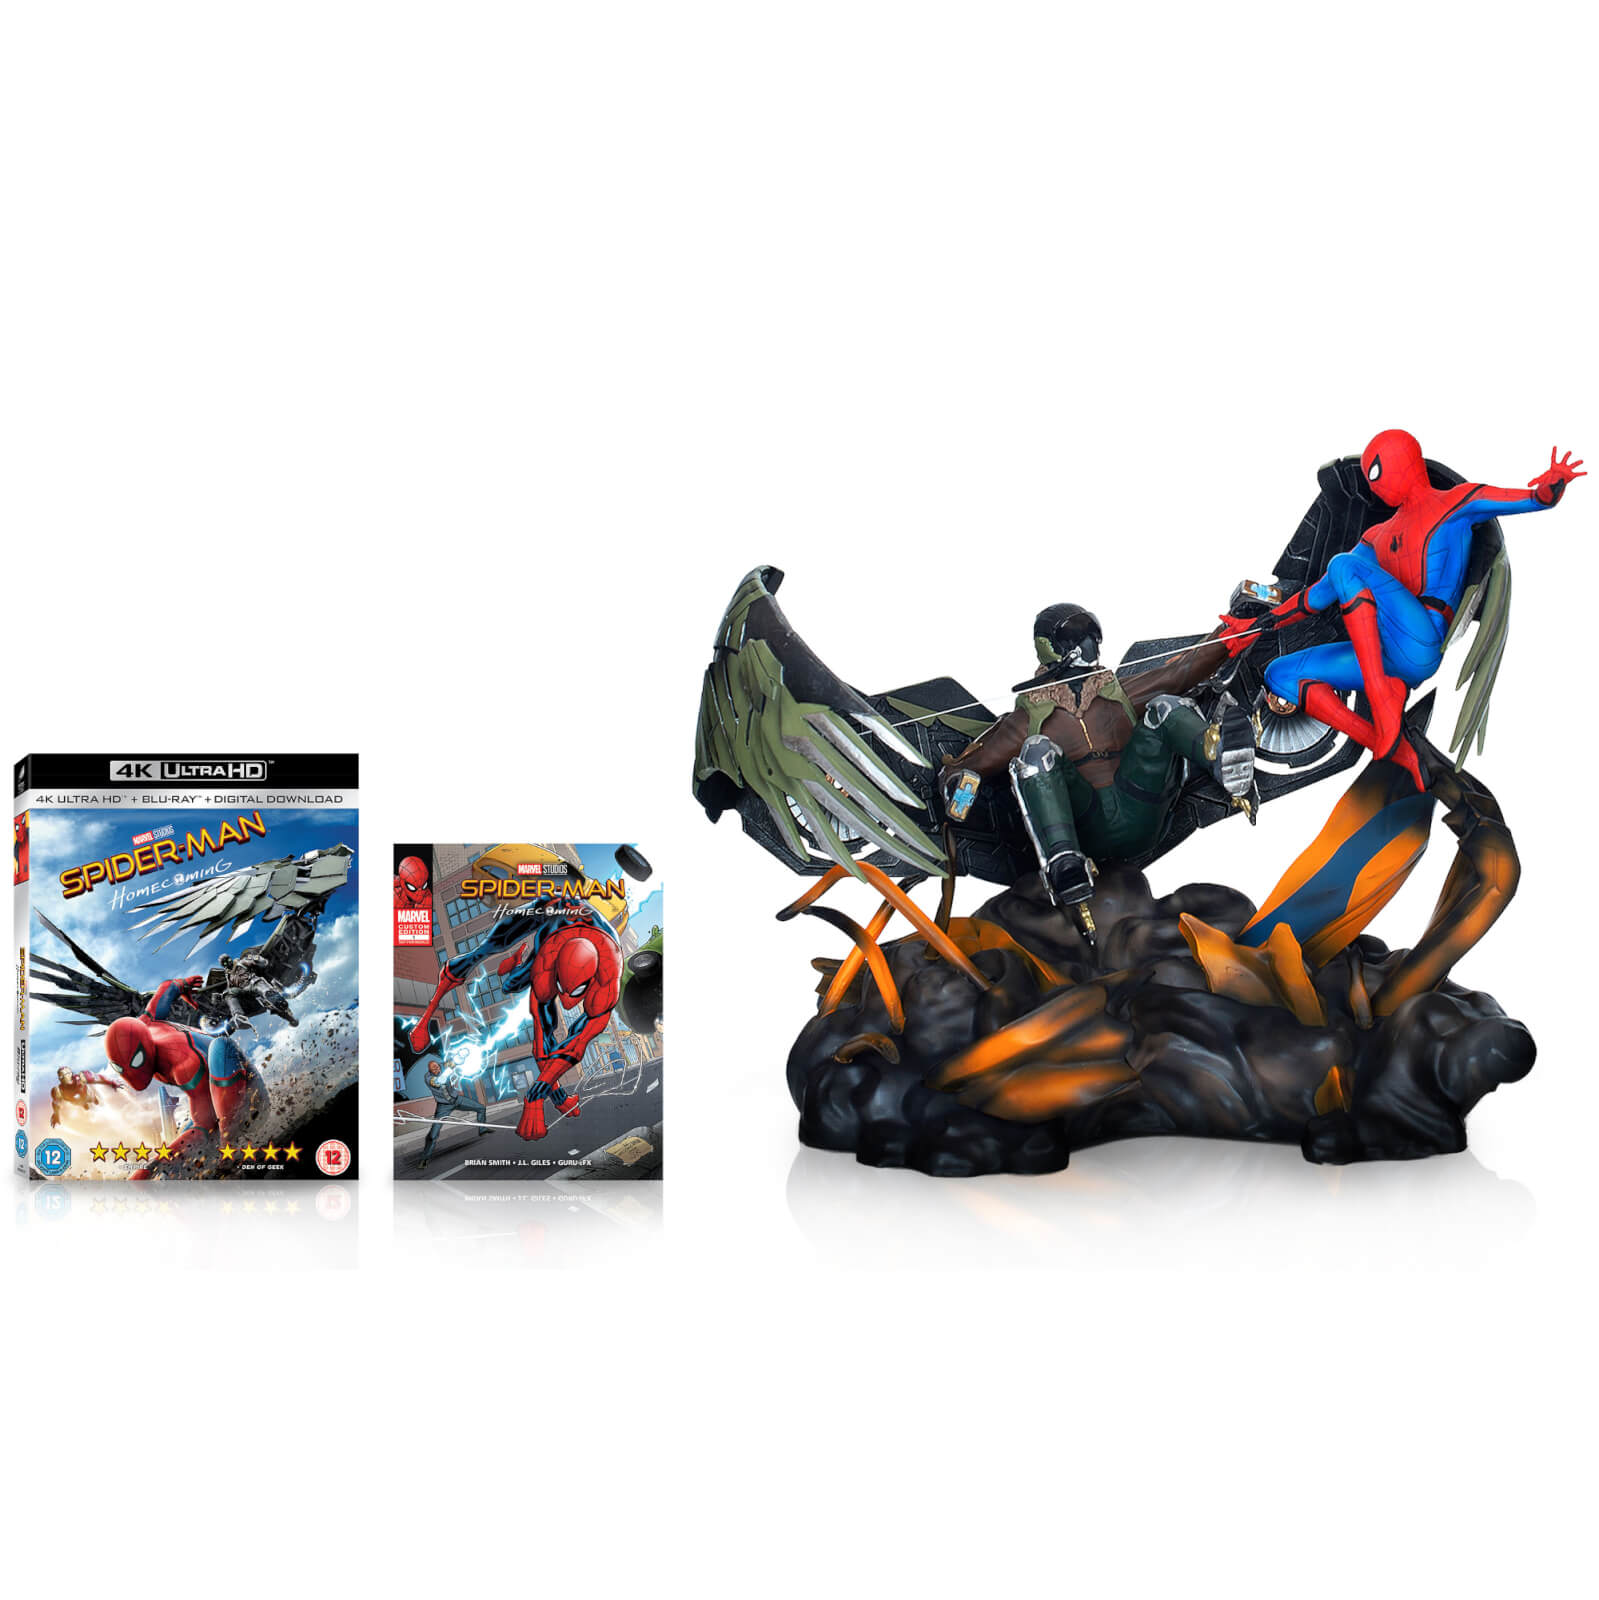 Spider-Man Homecoming - Édition Collector - 4K Ultra HD + Figurine + Comics